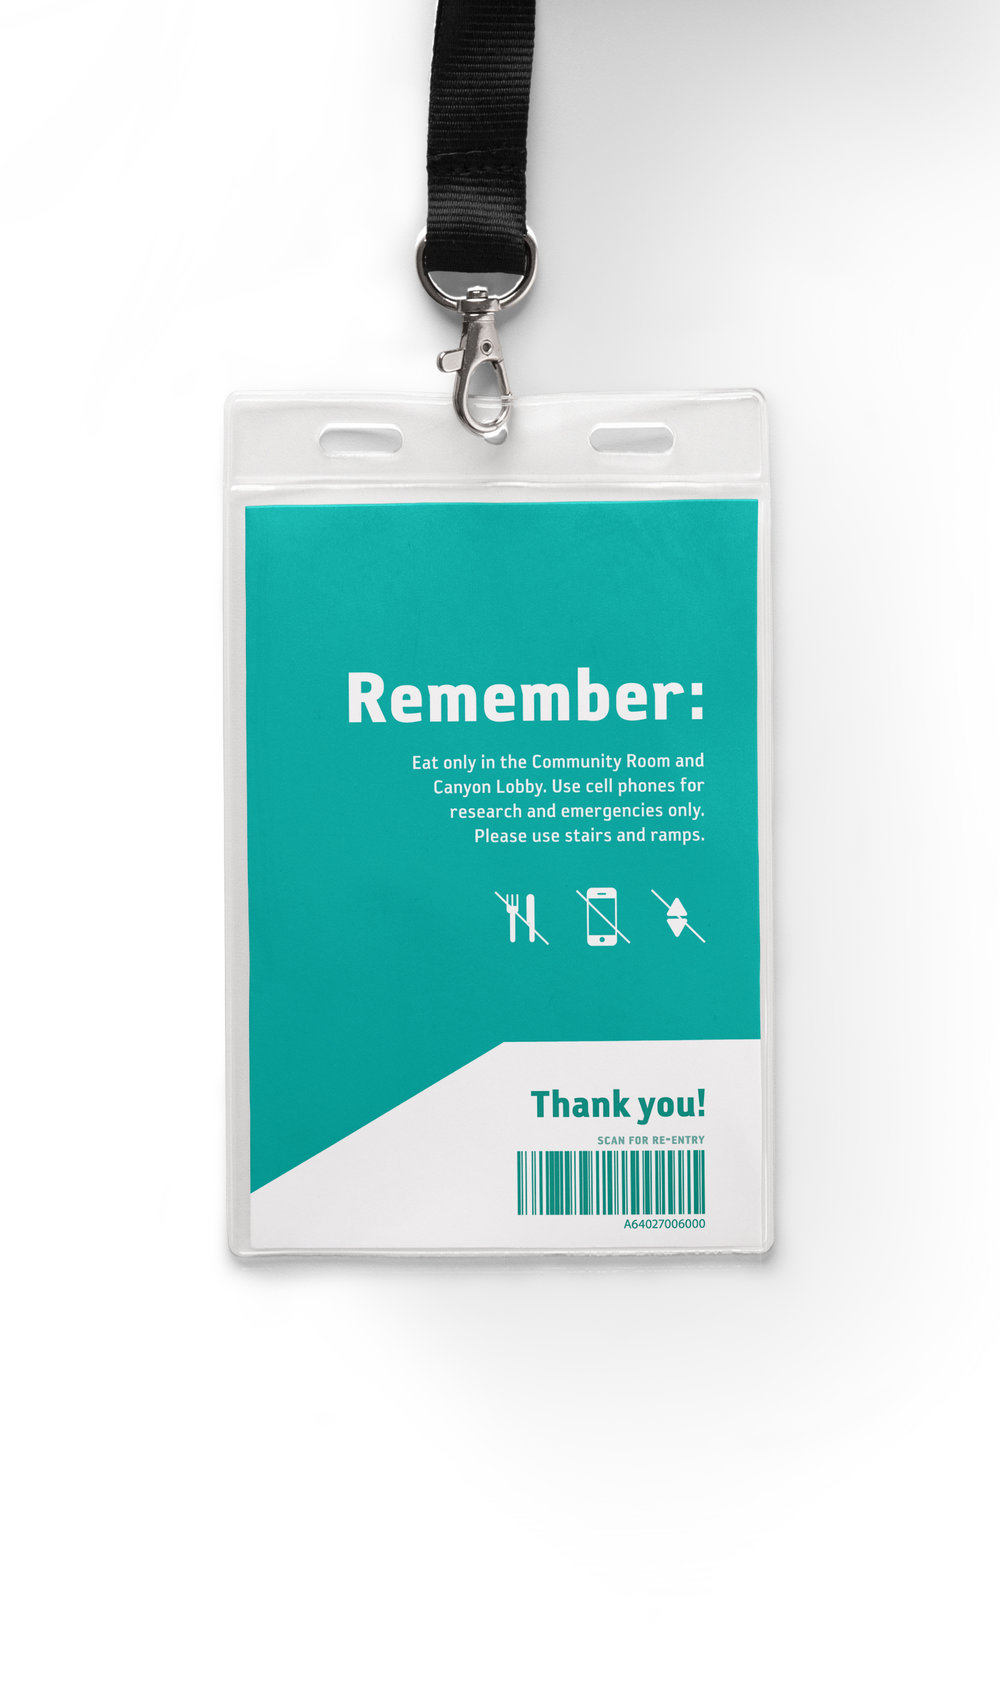 ID-Card-Holder-Mockup-vol-22.jpg